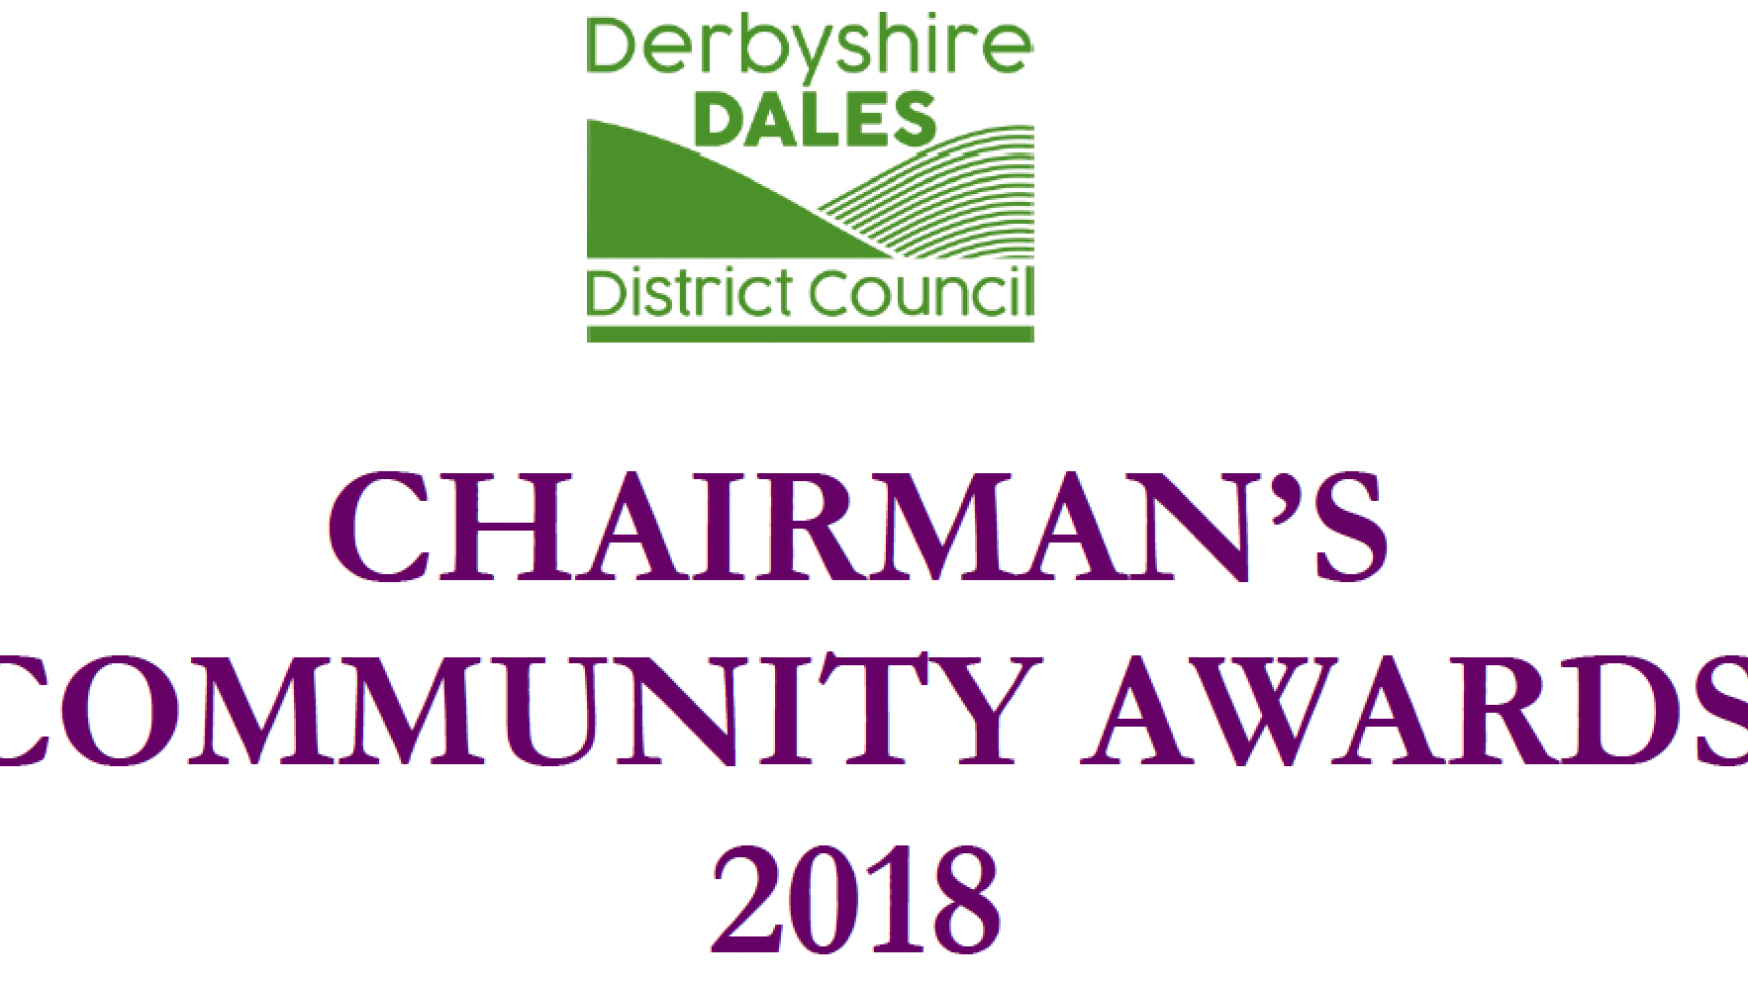 Recognising volunteers in the Derbyshire Dales